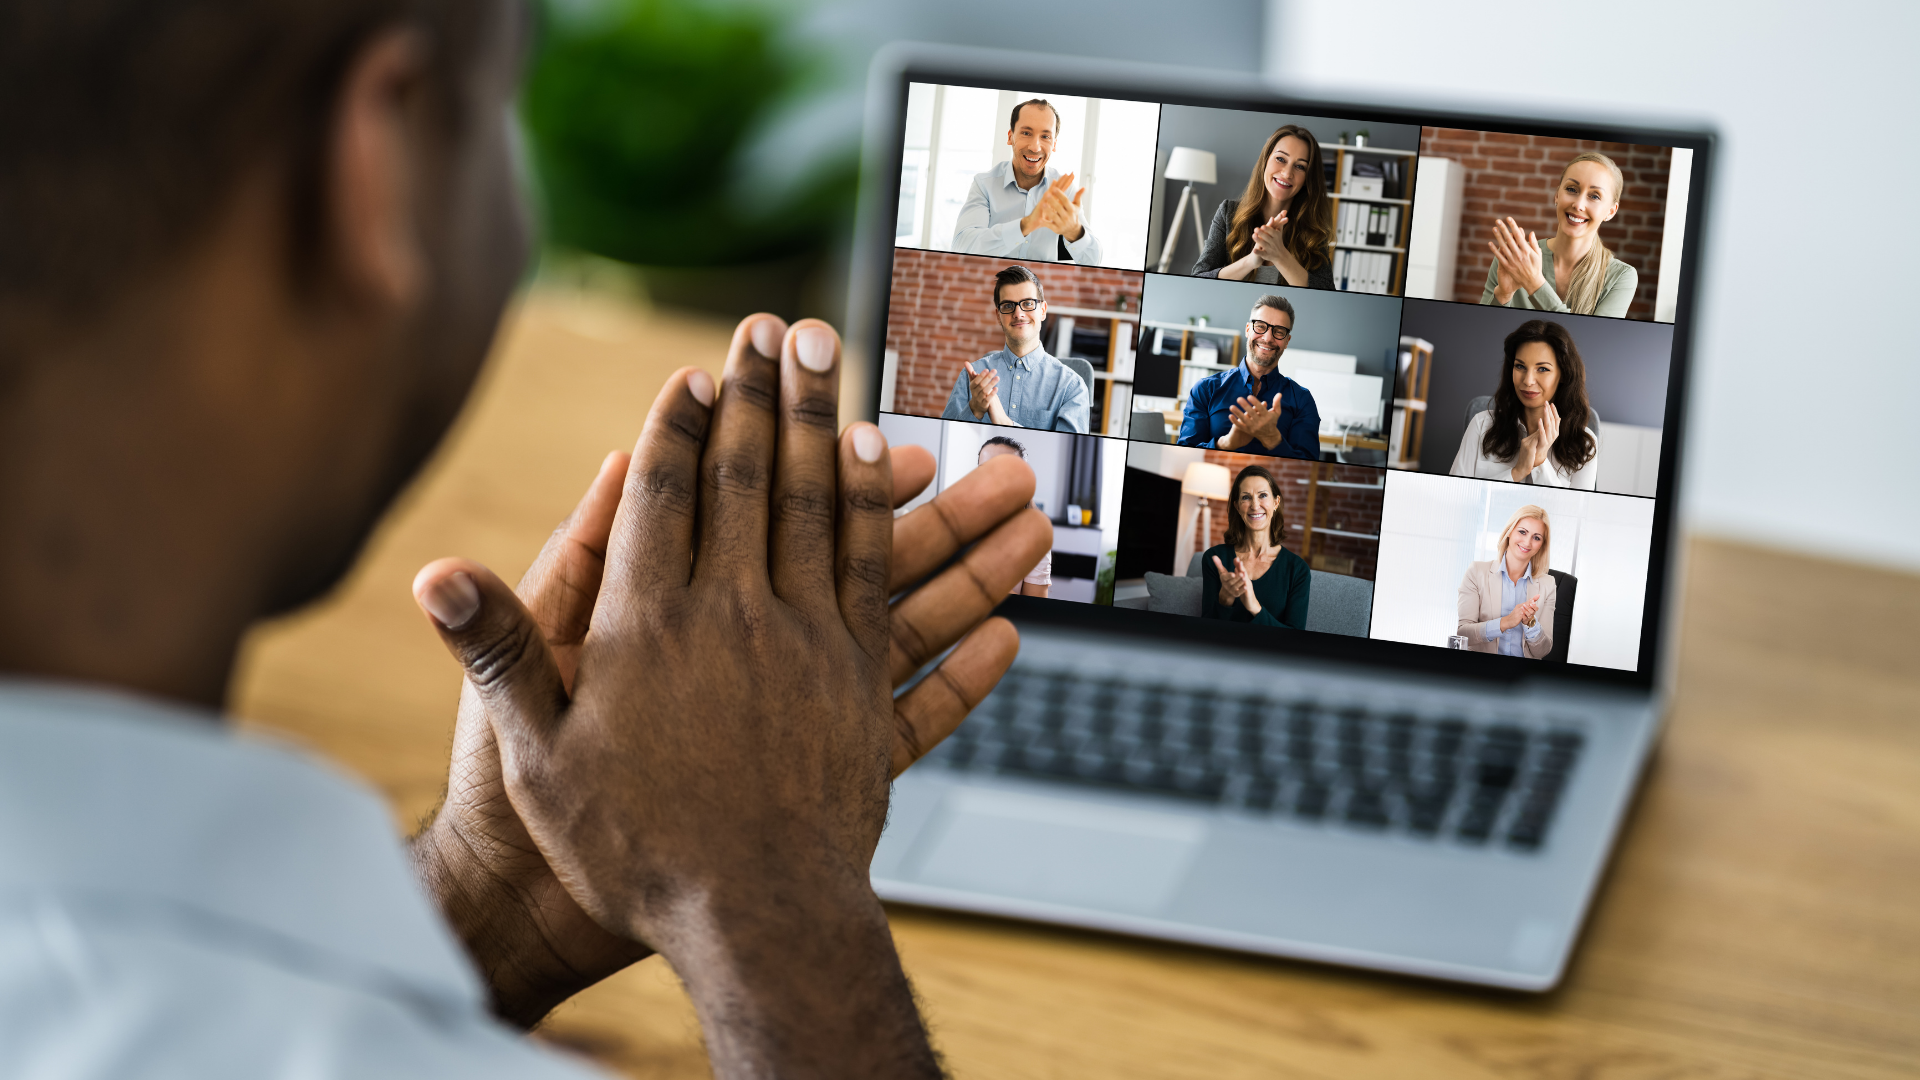 Image shows virtual meeting attendees applauding.